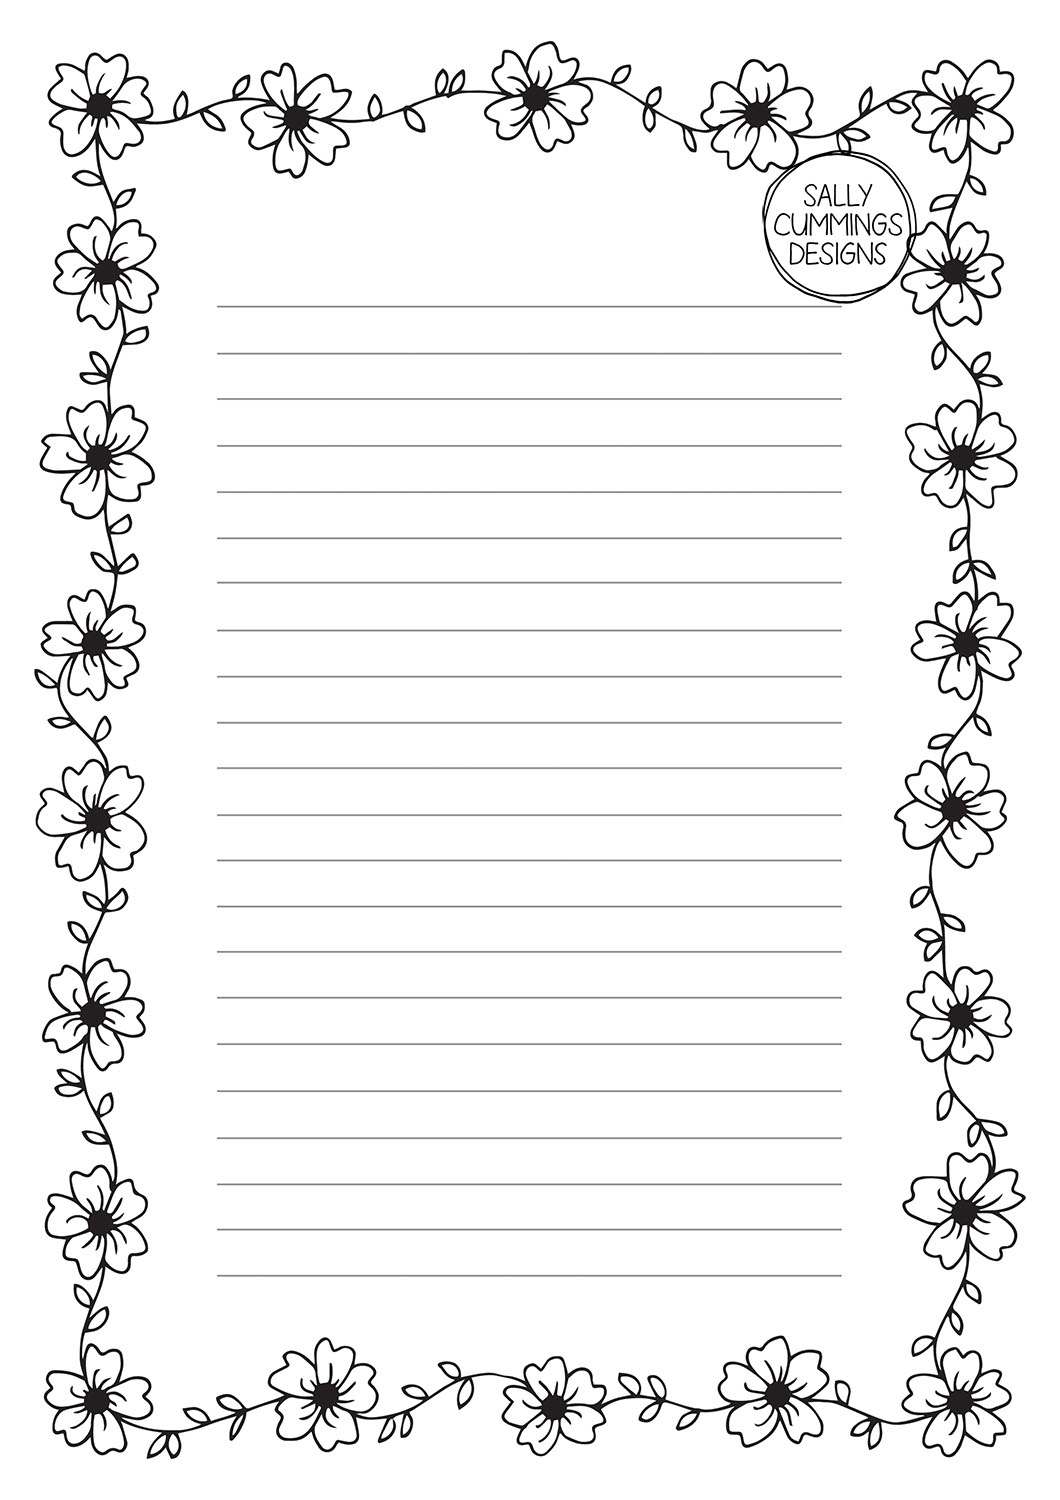 Cherry blossom writing paper - black and white